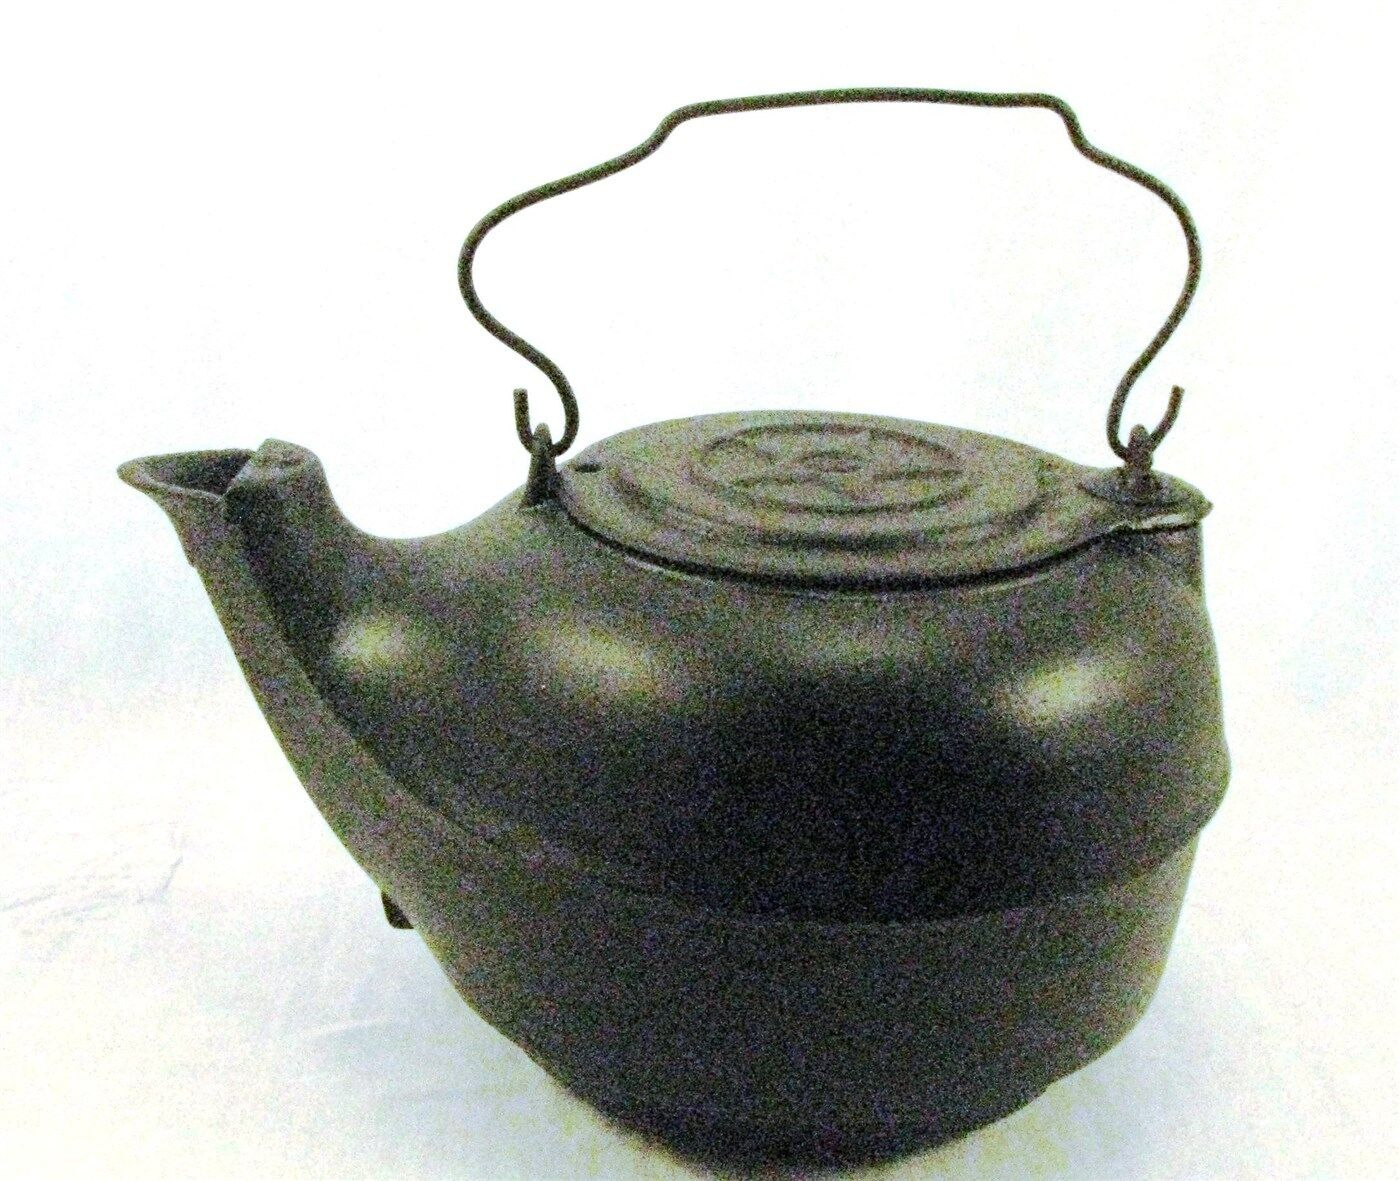 ANTIQUE BIRD SPOUT CHATTANOOGA STOVE STAR 8 CAST IRON CAMP FIRE TEA KETTLE POT